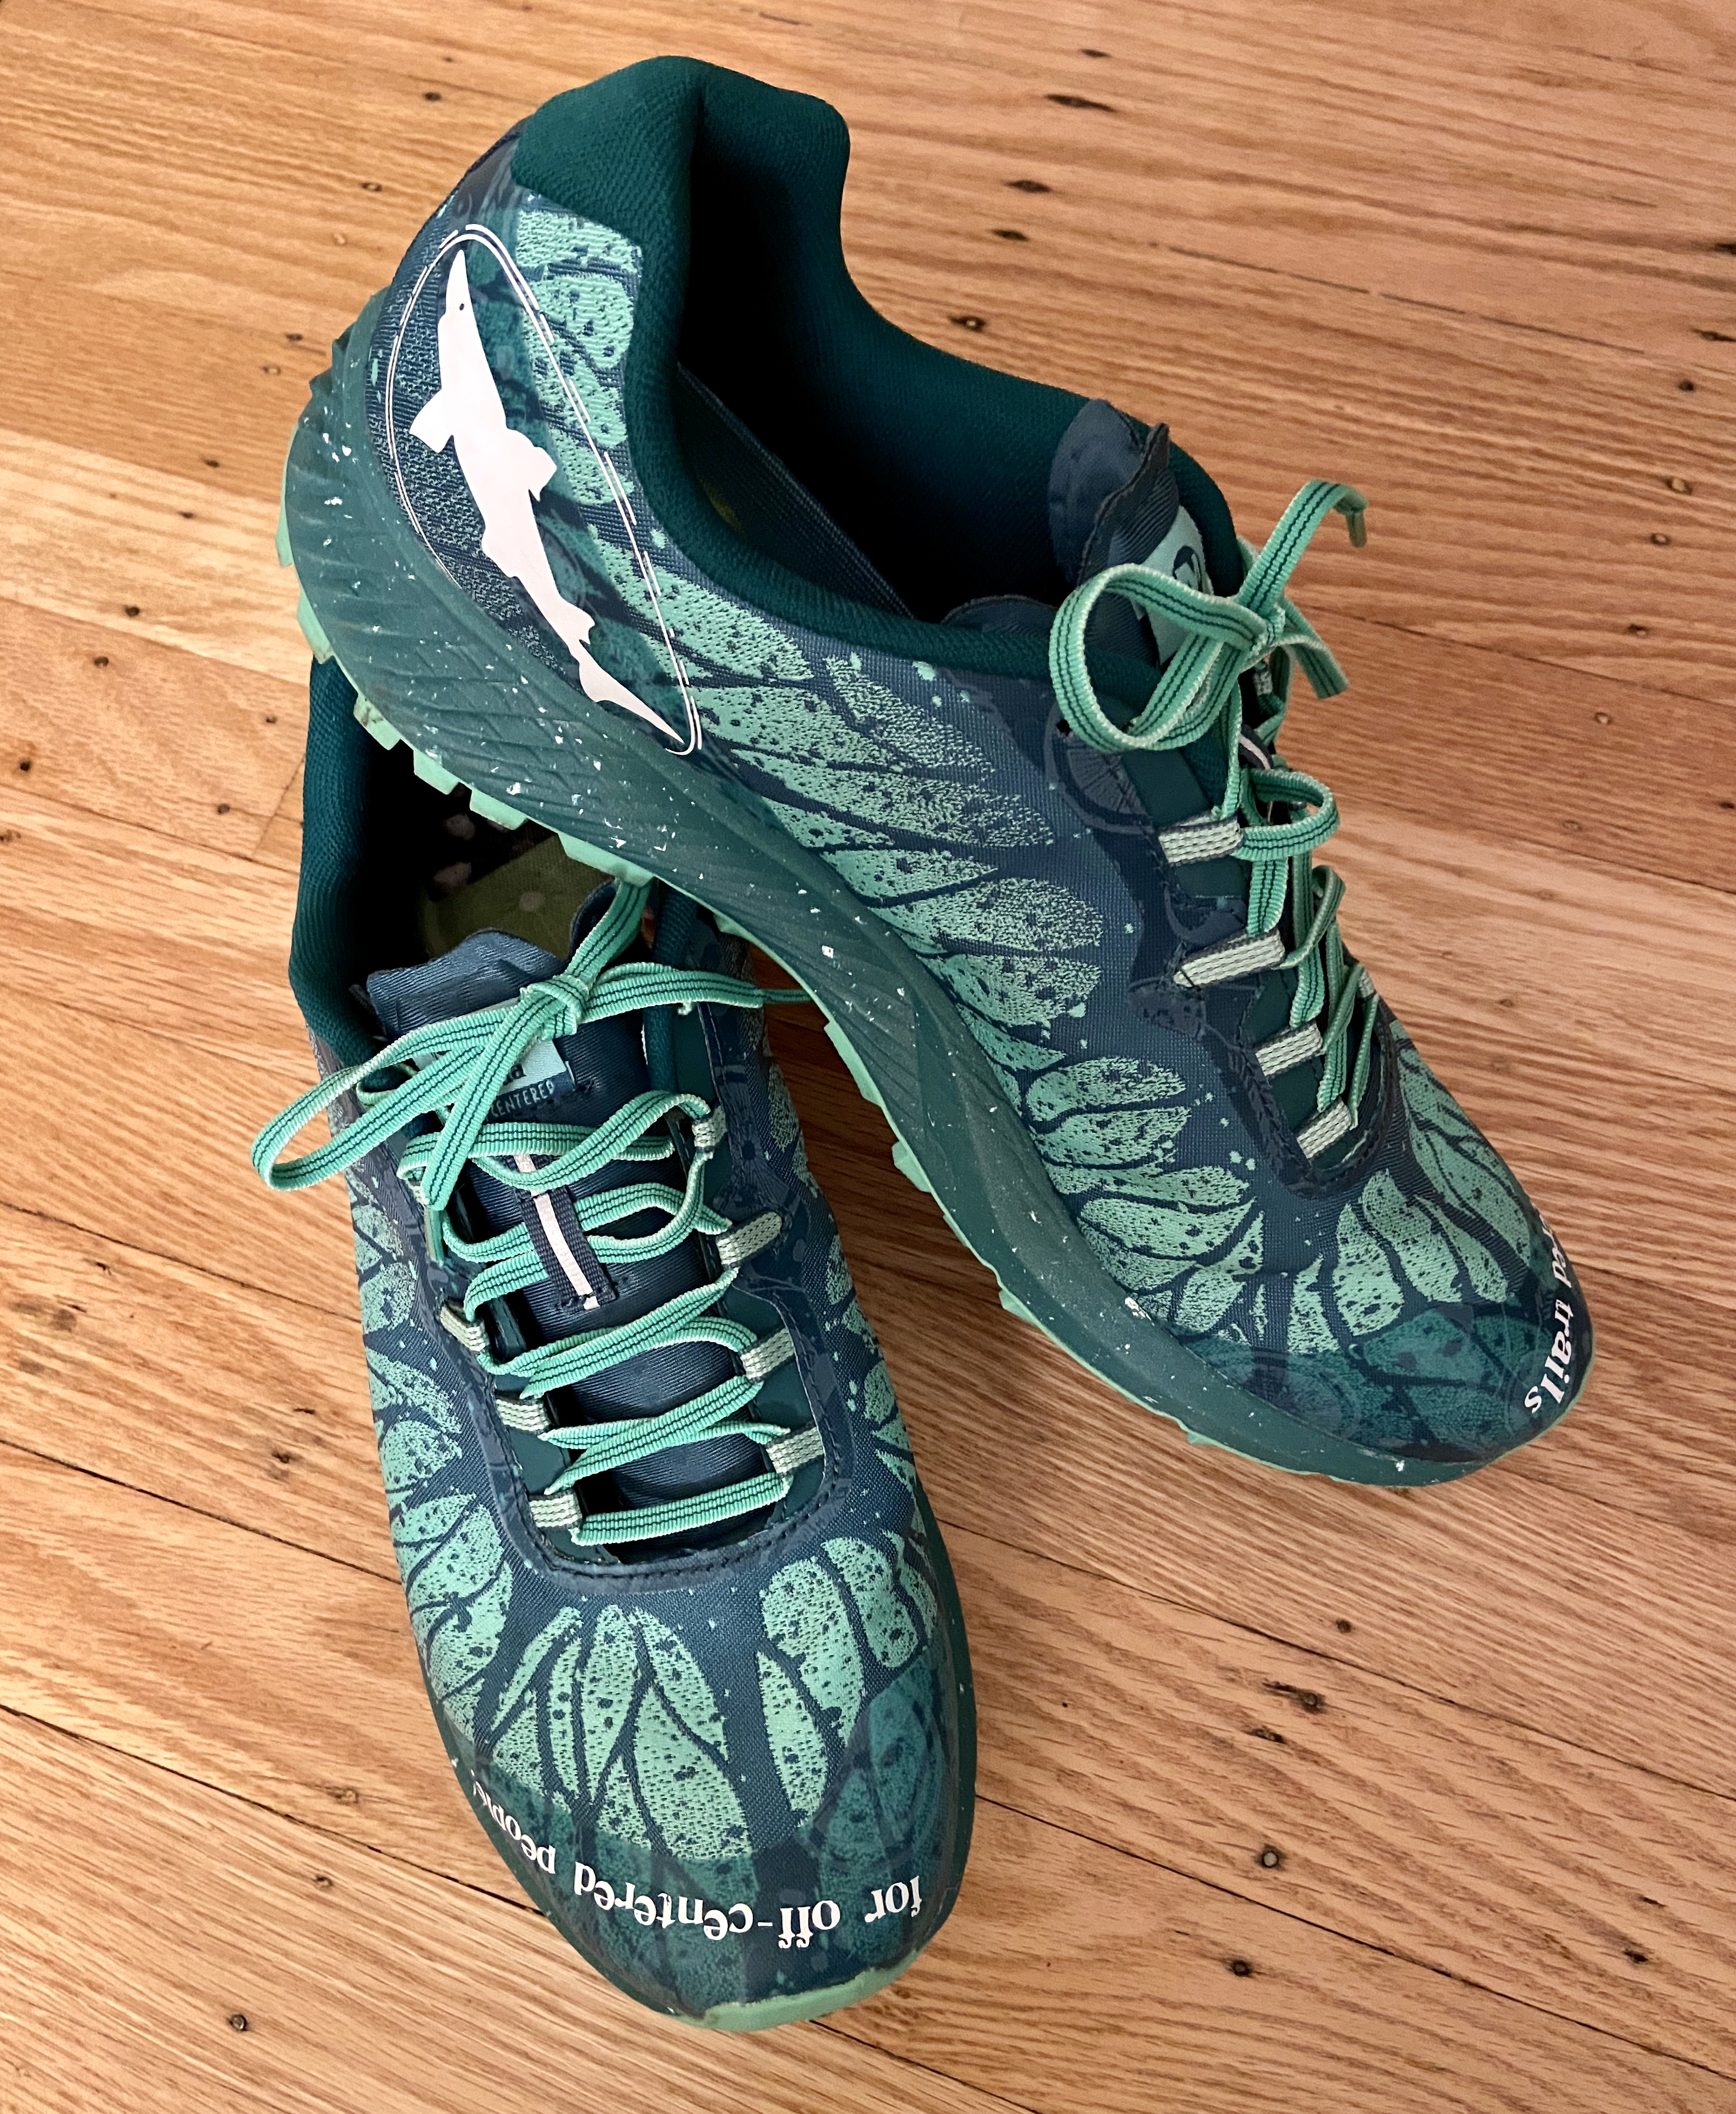 Merrell Agility Synthesis X Dogfish Trail Runner Shoes